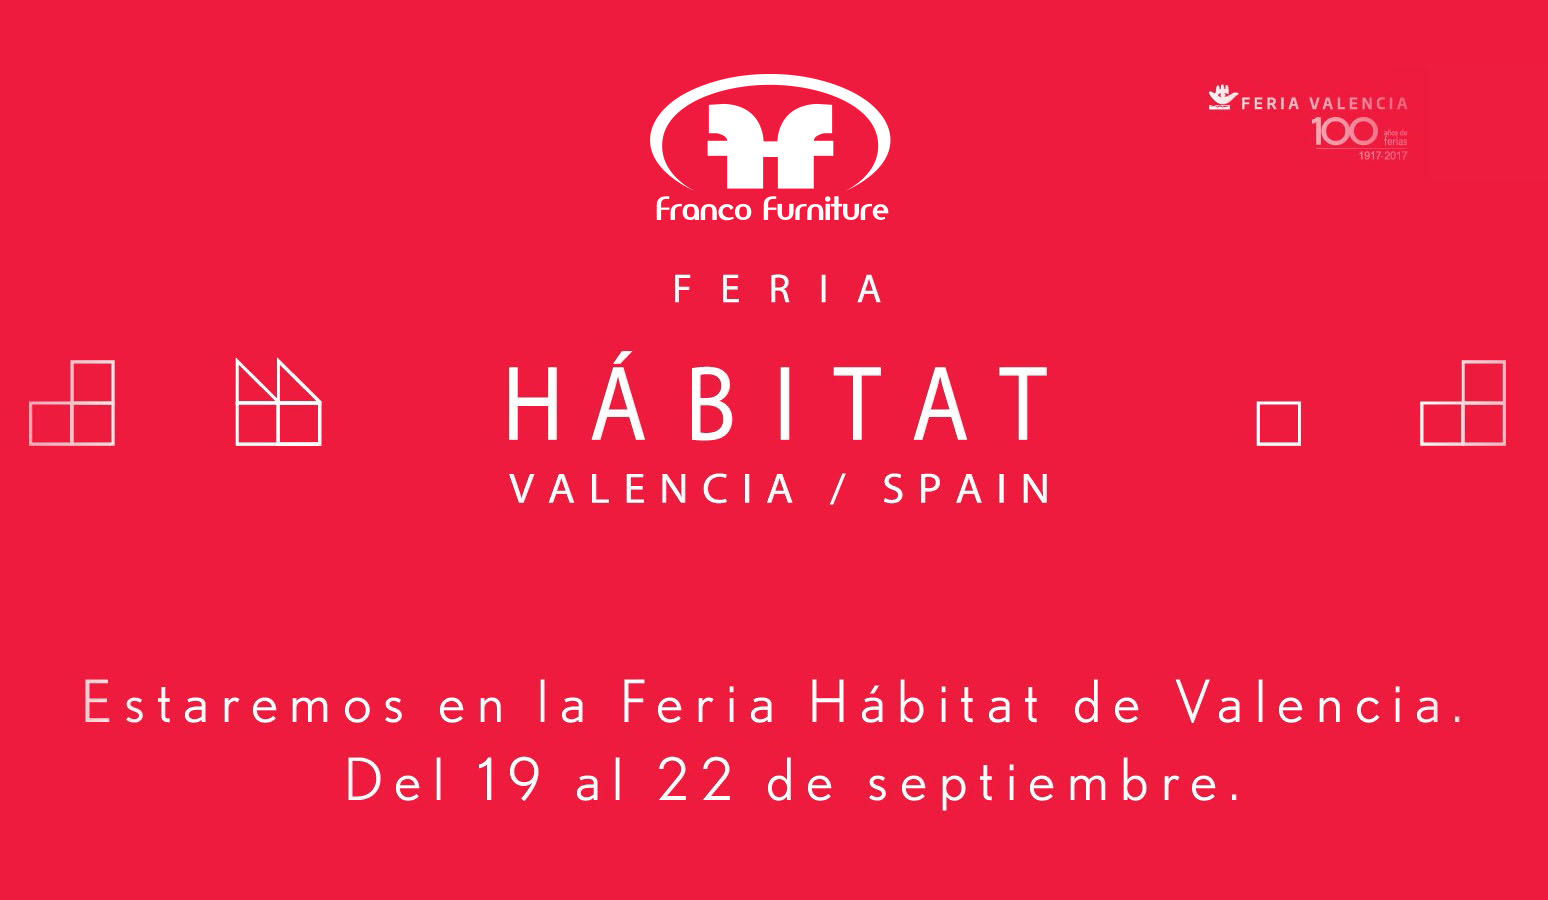 Feria Habitat Valencia 2017 Franco Furniture